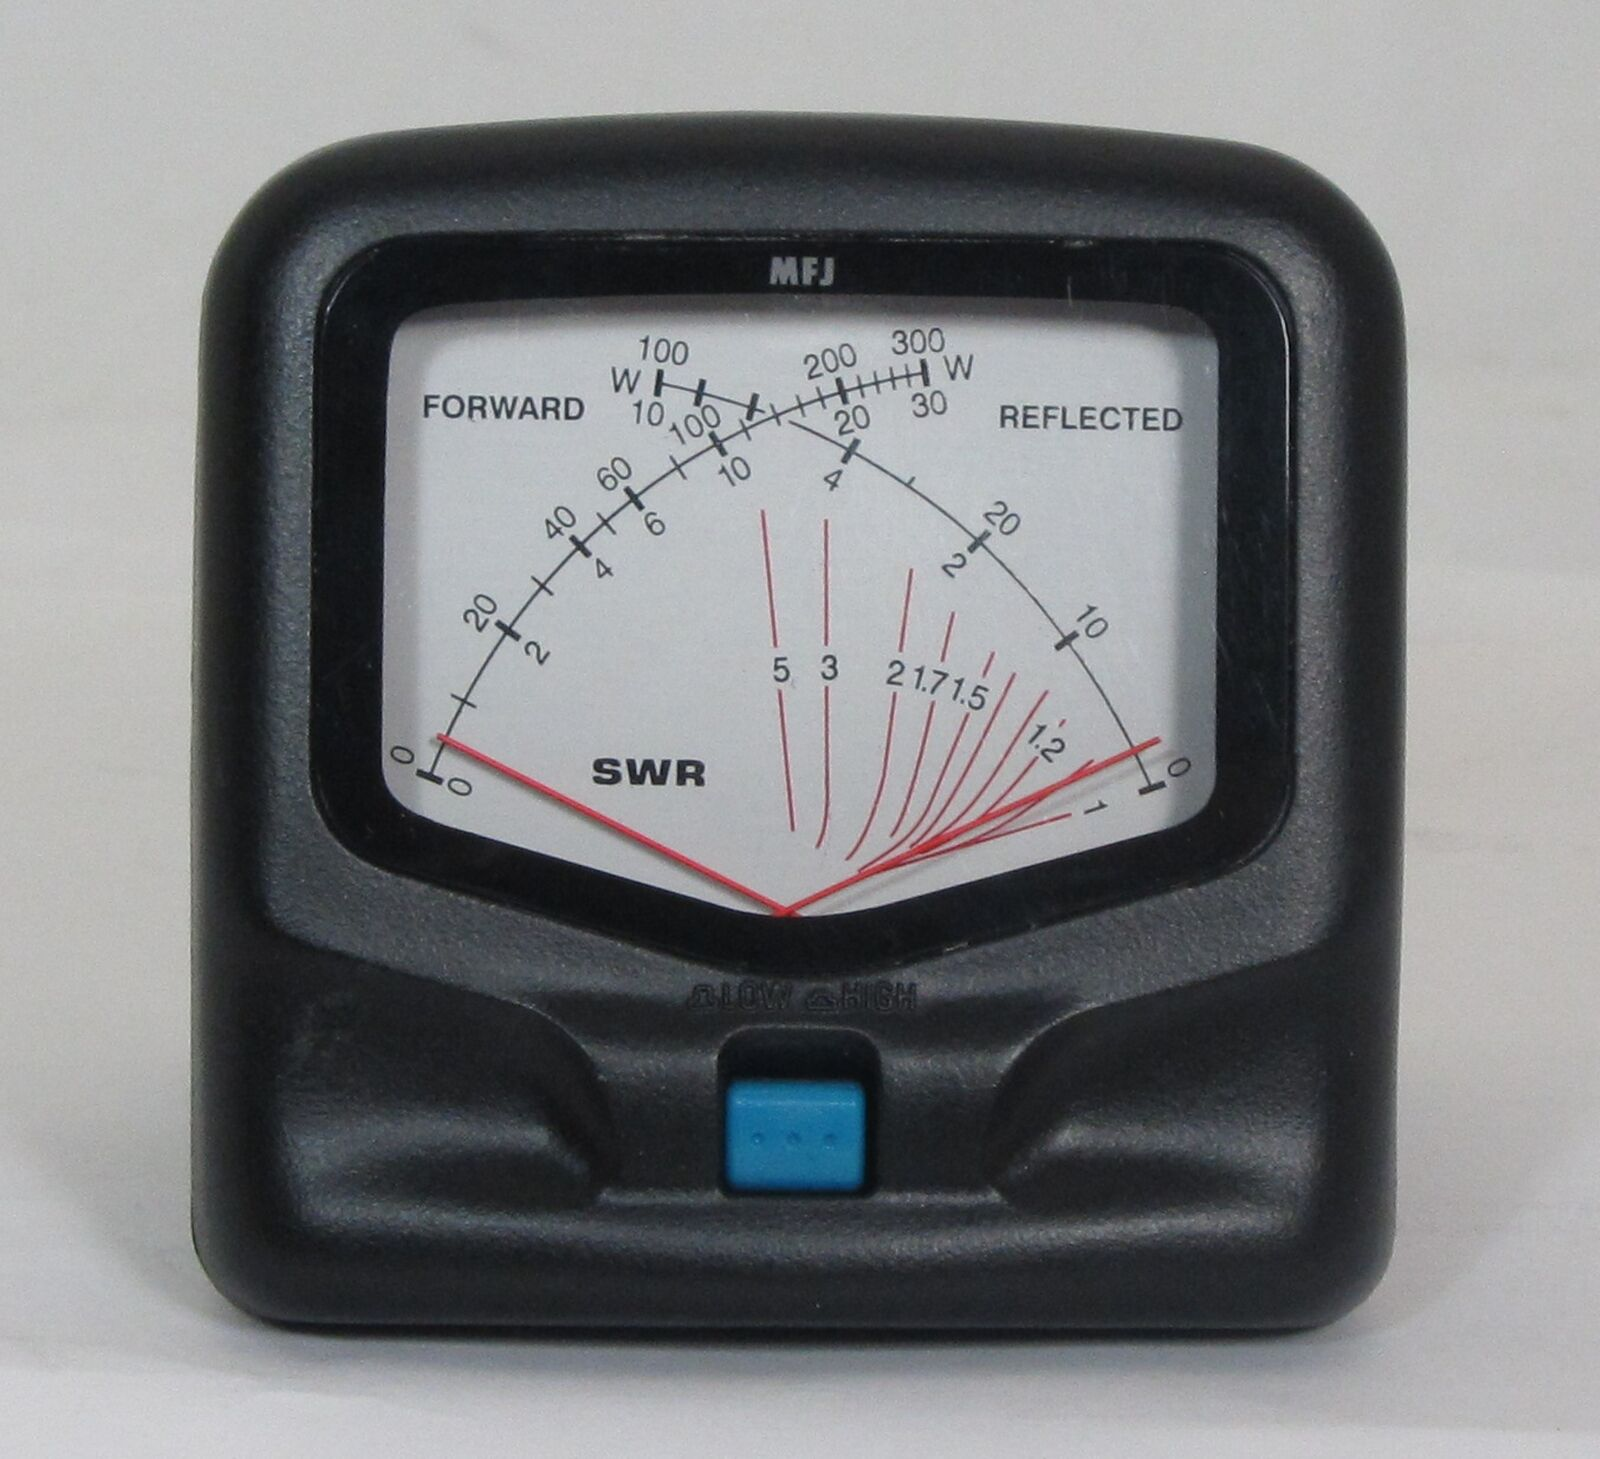 MFJ-822 HF/VHF 1.8-200Hz Compact 3 Cross-Needle SWR / WattMeter 30/300W. Available Now for 76.49